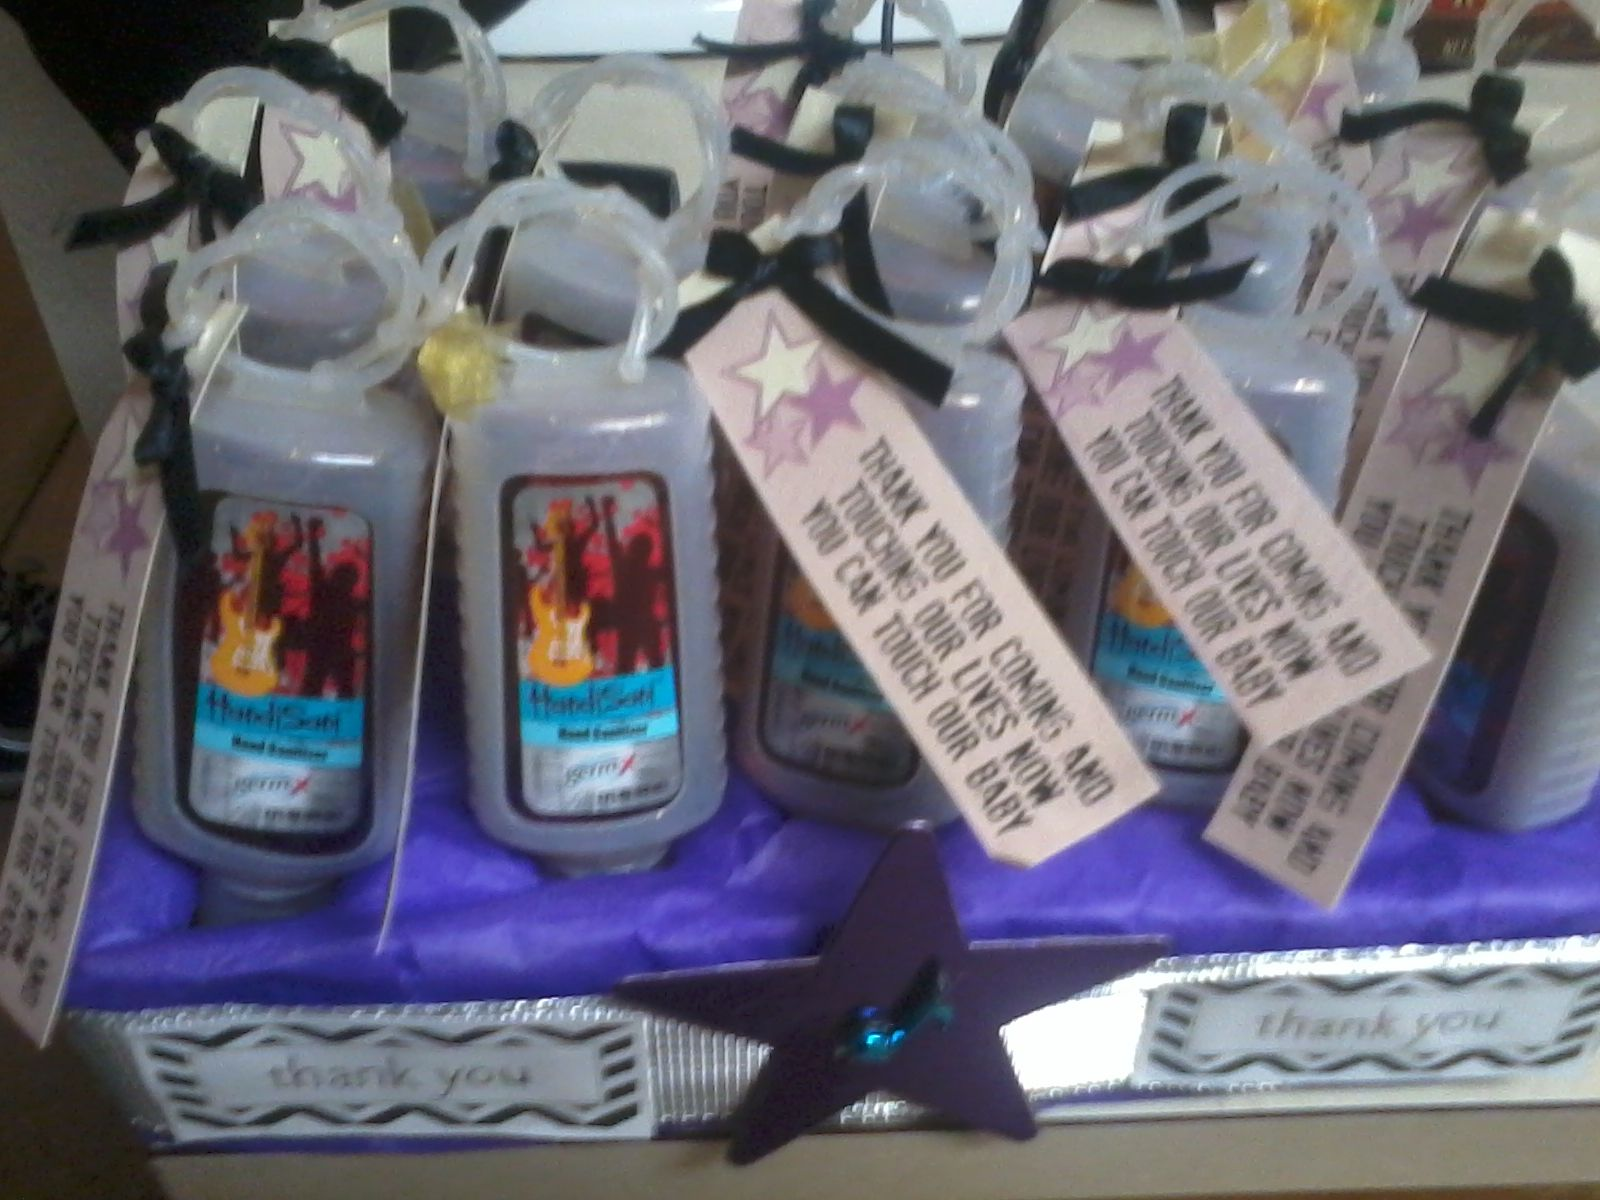 Rock Star Baby Shower Favors Germ X Hand Sanitizer Tag Says